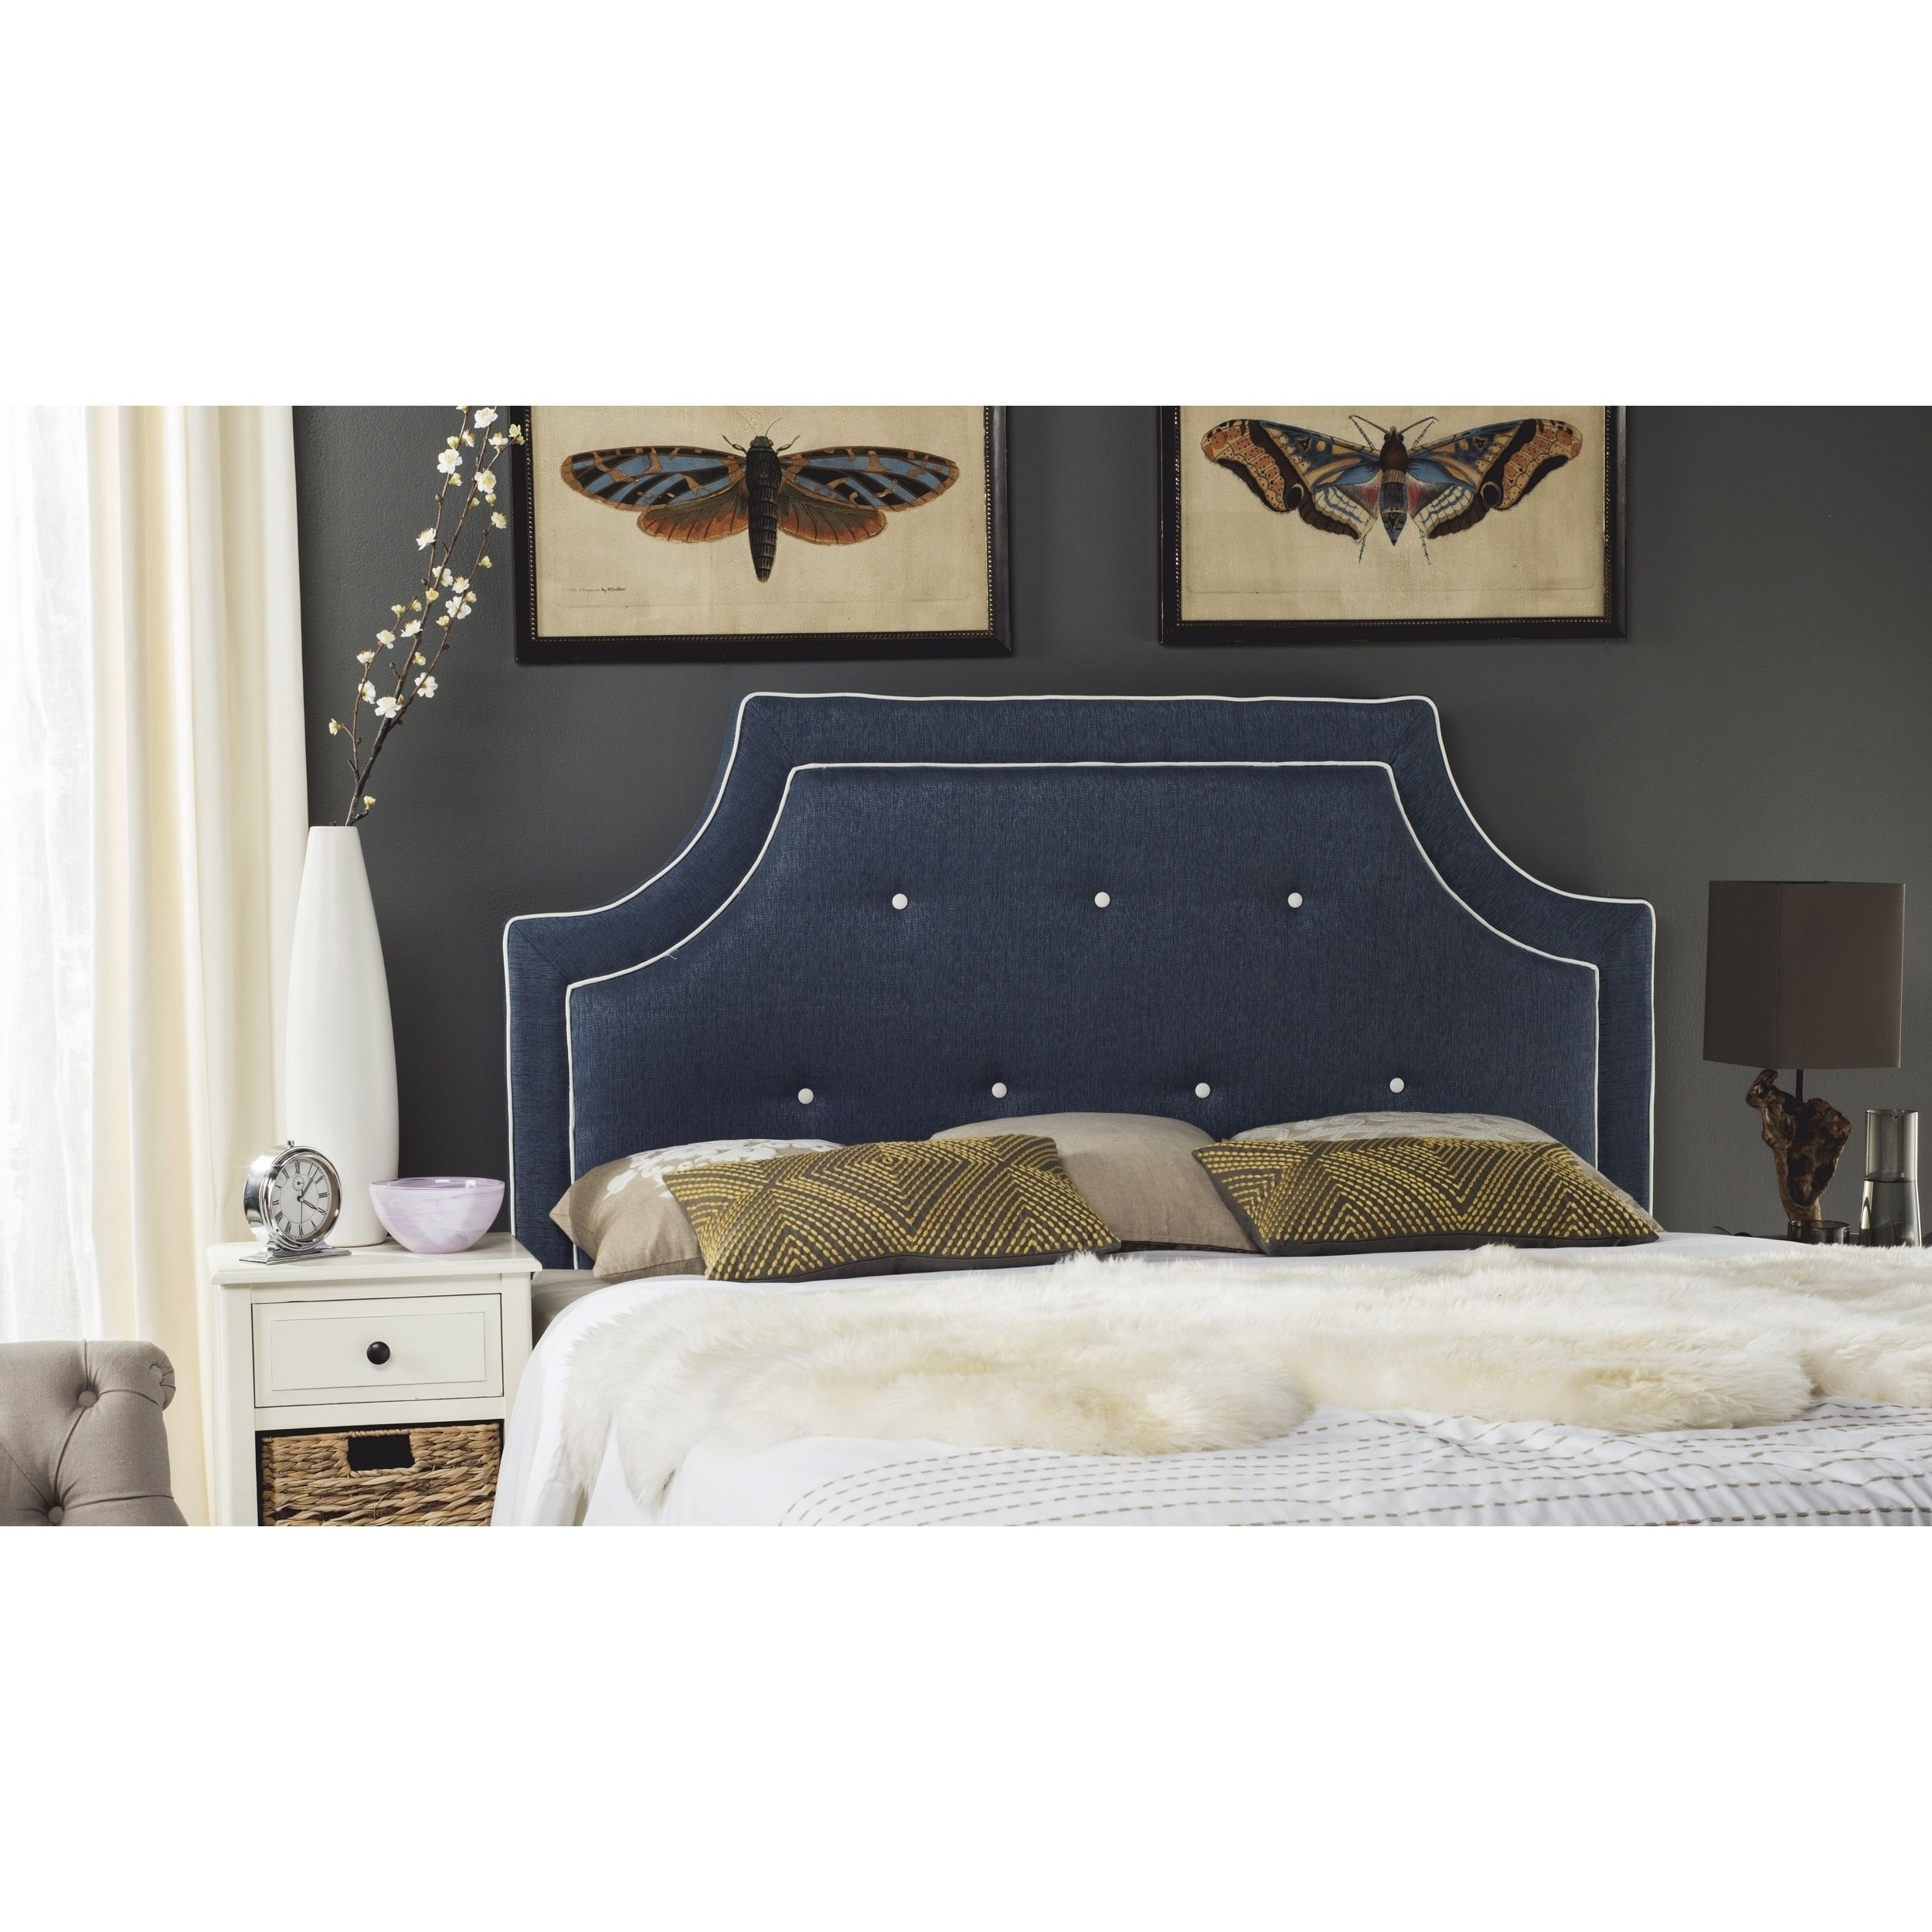 headboard also modern upholstered designs california king linen and nailhead fabric headboards interalle com